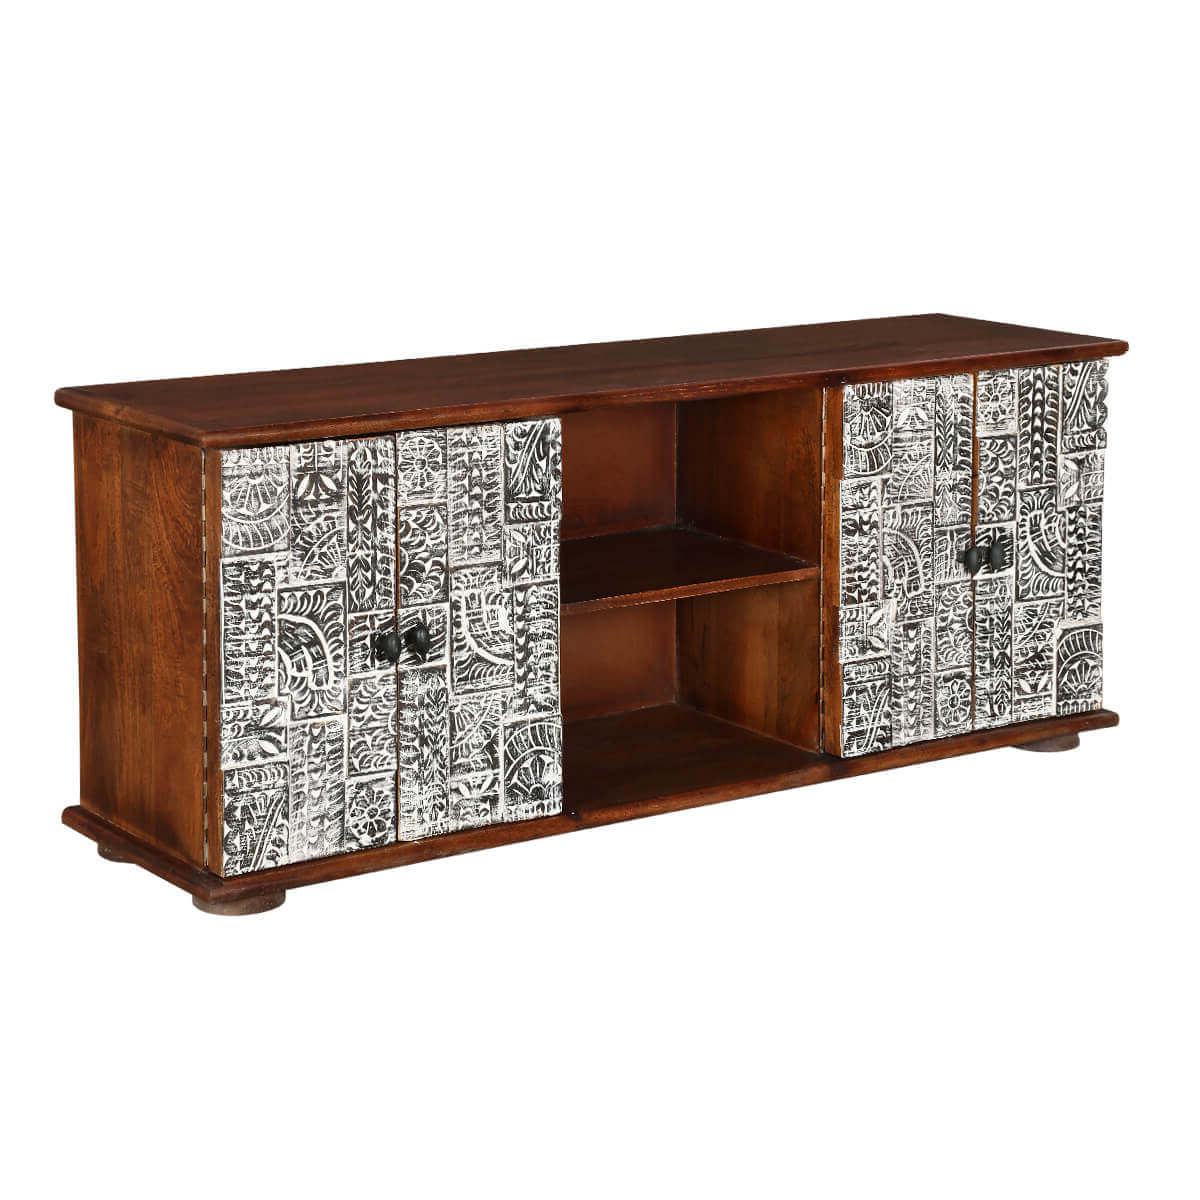 Riviera Rustic Mango Wood Tv Stand With Cabinet Shelves Regarding Newest Mango Wood Tv Cabinets (View 15 of 20)